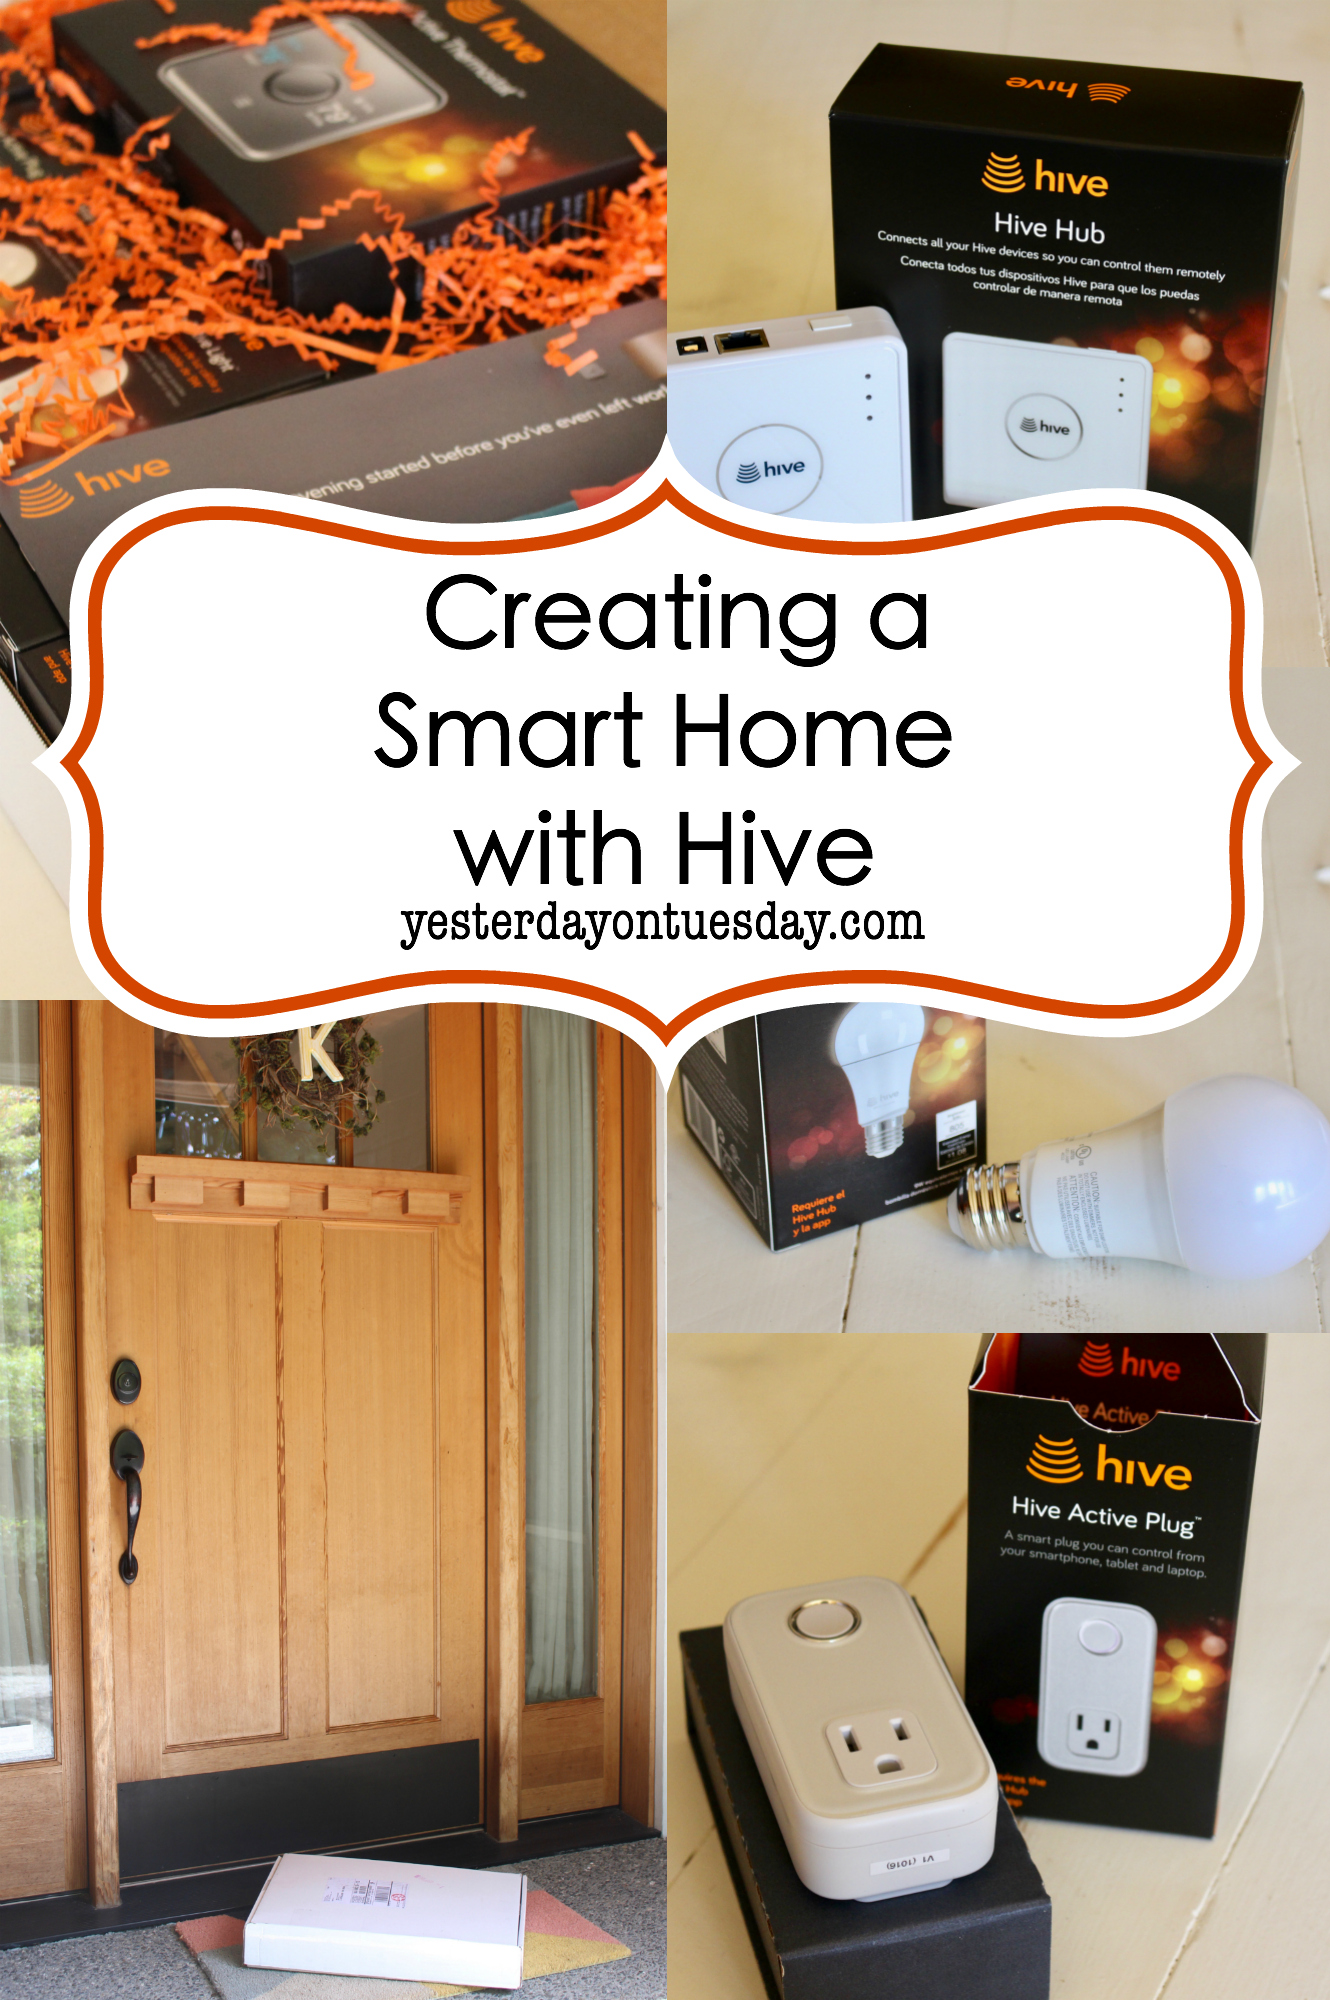 Creating a Smart Home with Hive